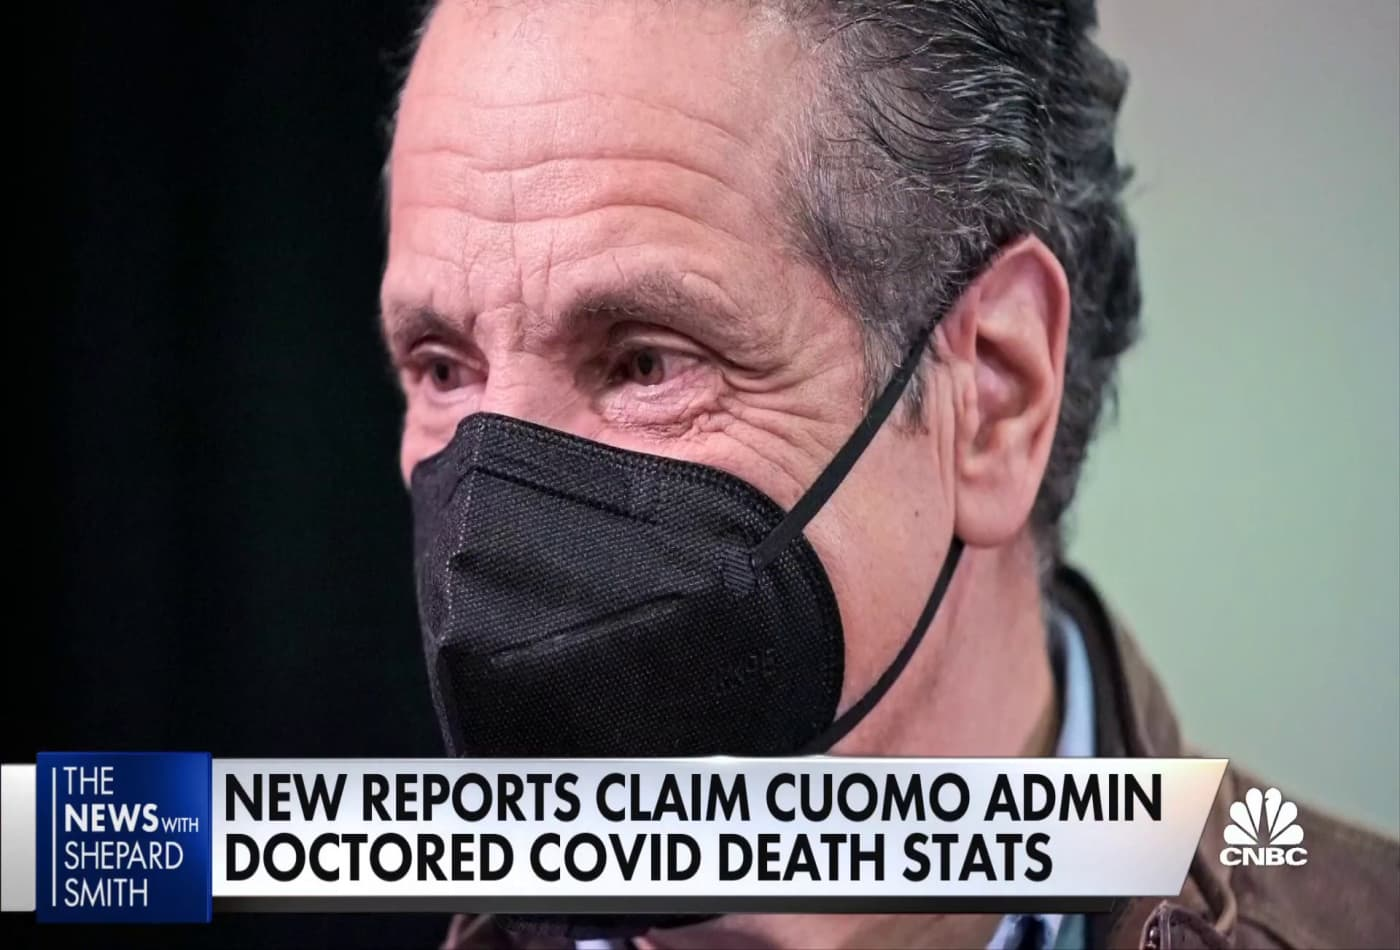 New report claims Cuomo administration doctored Covid death stats